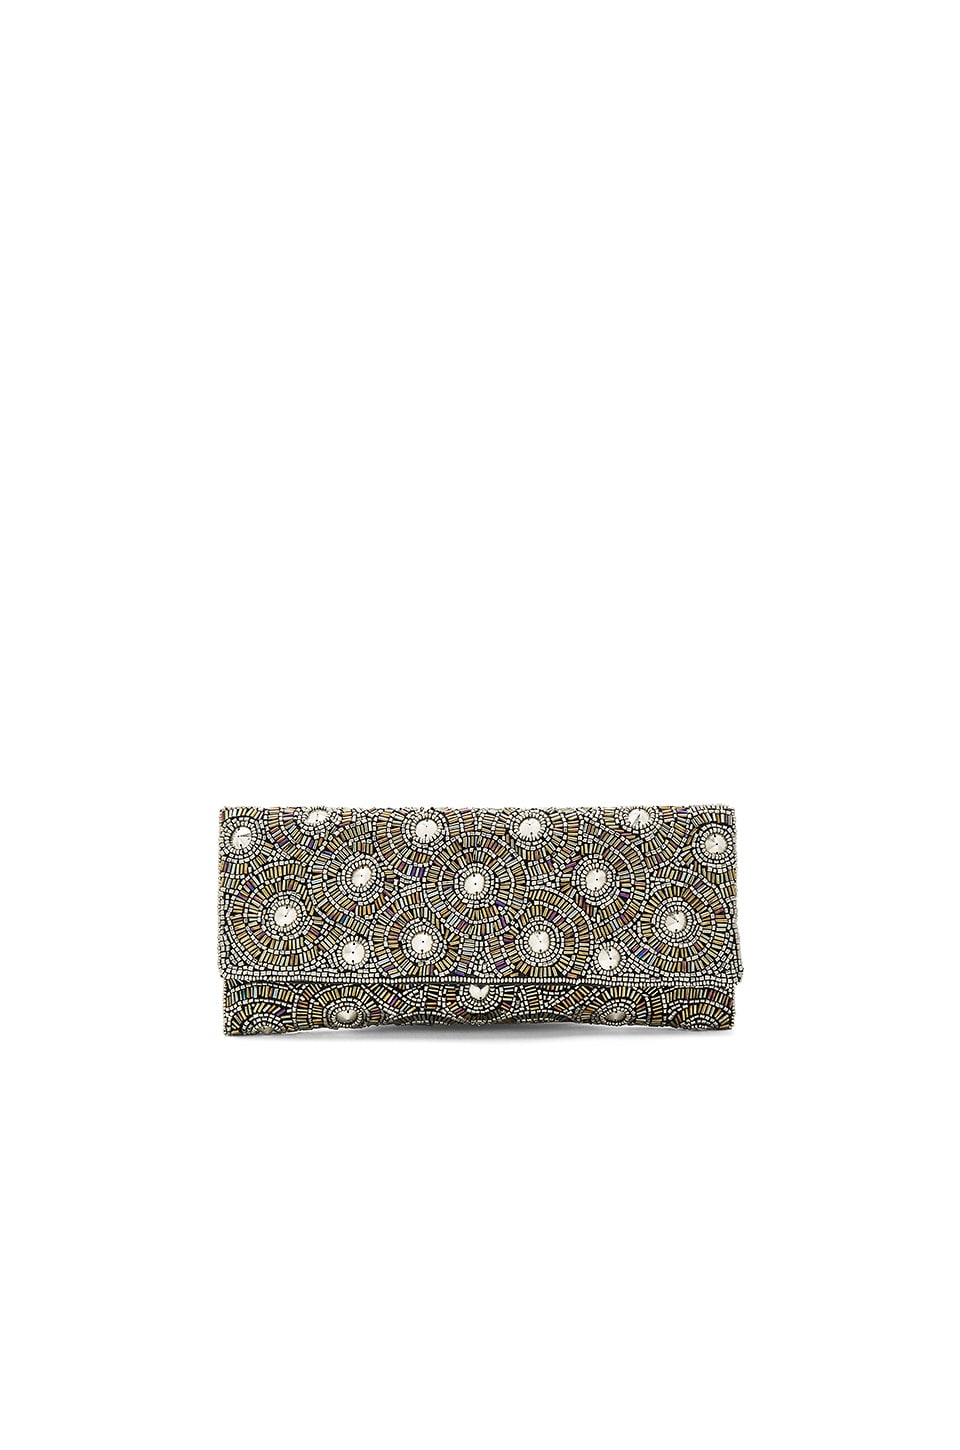 From St Xavier Demi Clutch in Silver